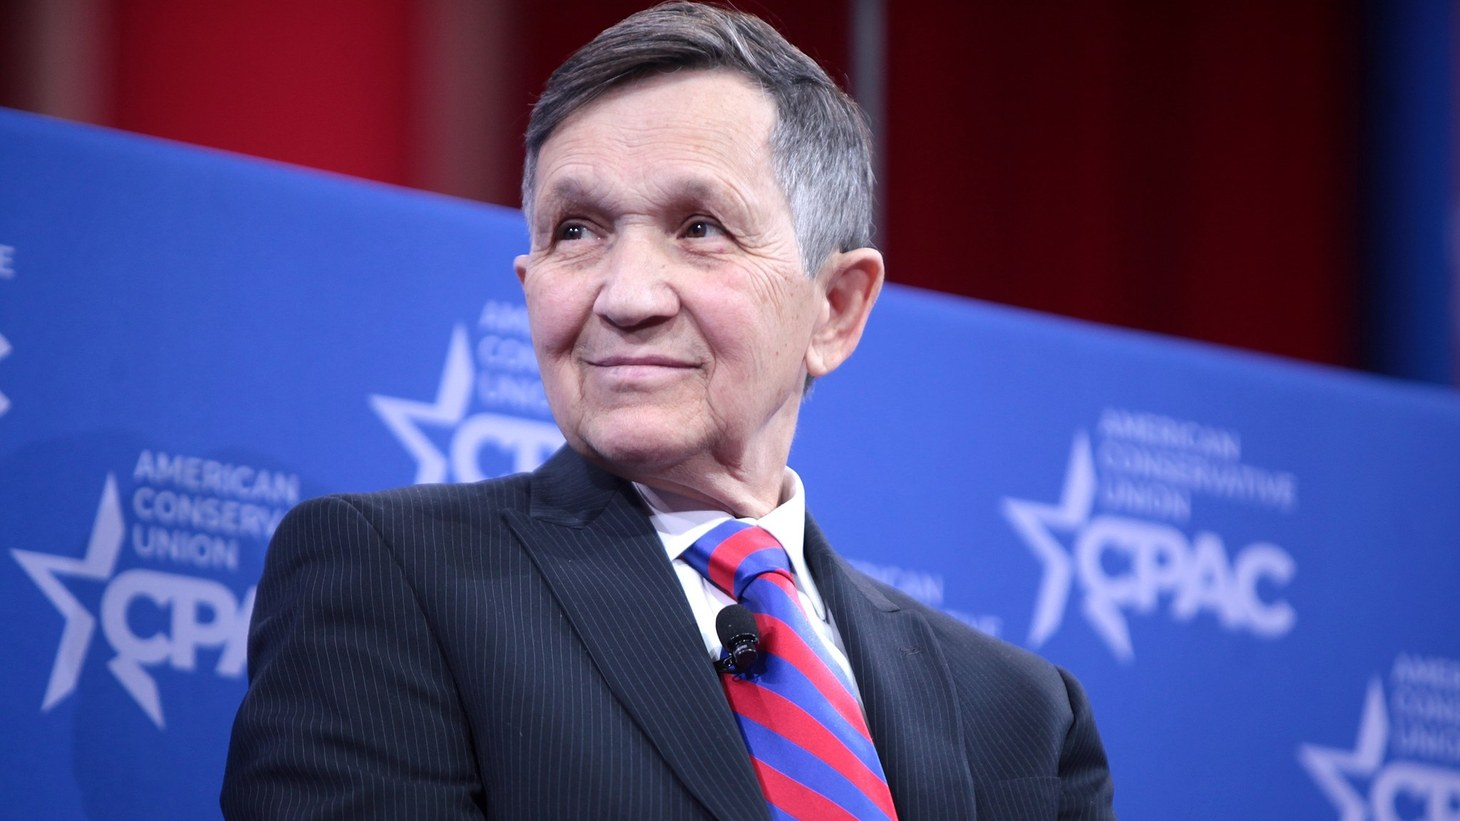 Dennis Kucinich speaking at CPAC 2015 in Washington, DC.